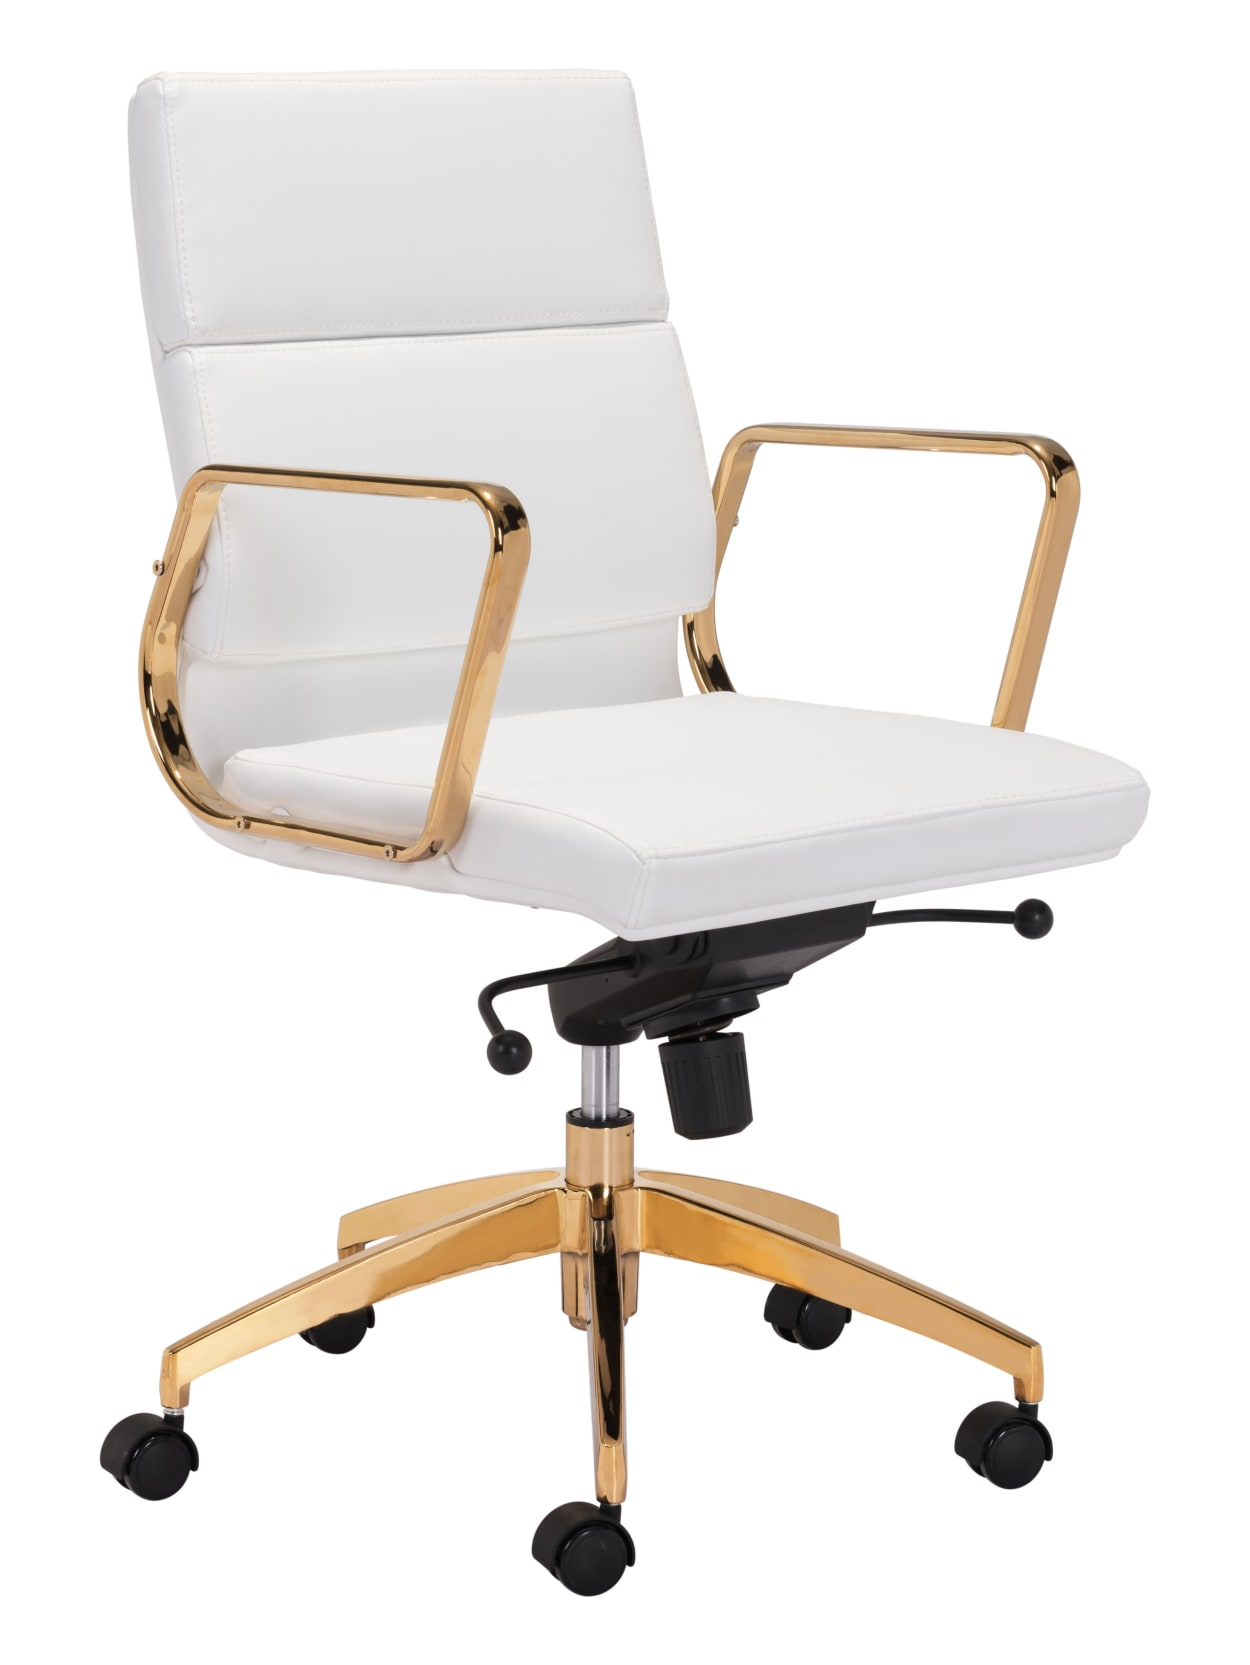 Zuo Modern Scientist Mid Back Office Chair WhiteGold - Office Depot